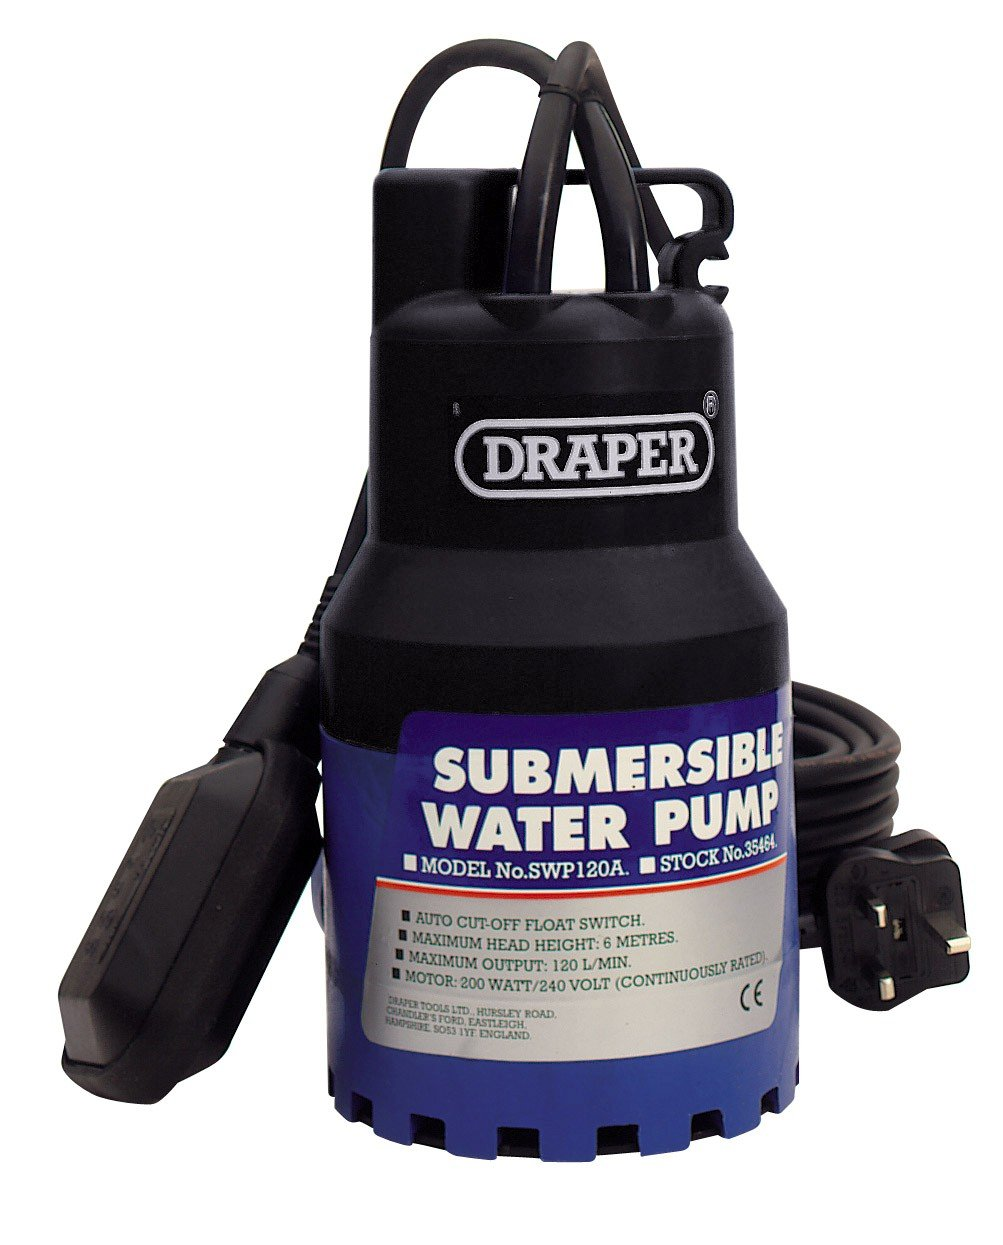 Draper 35464 120-Litres-per-Minute 230-Volt 200-Watt Submersible Water Pump with 6 m Lift and Float Switch